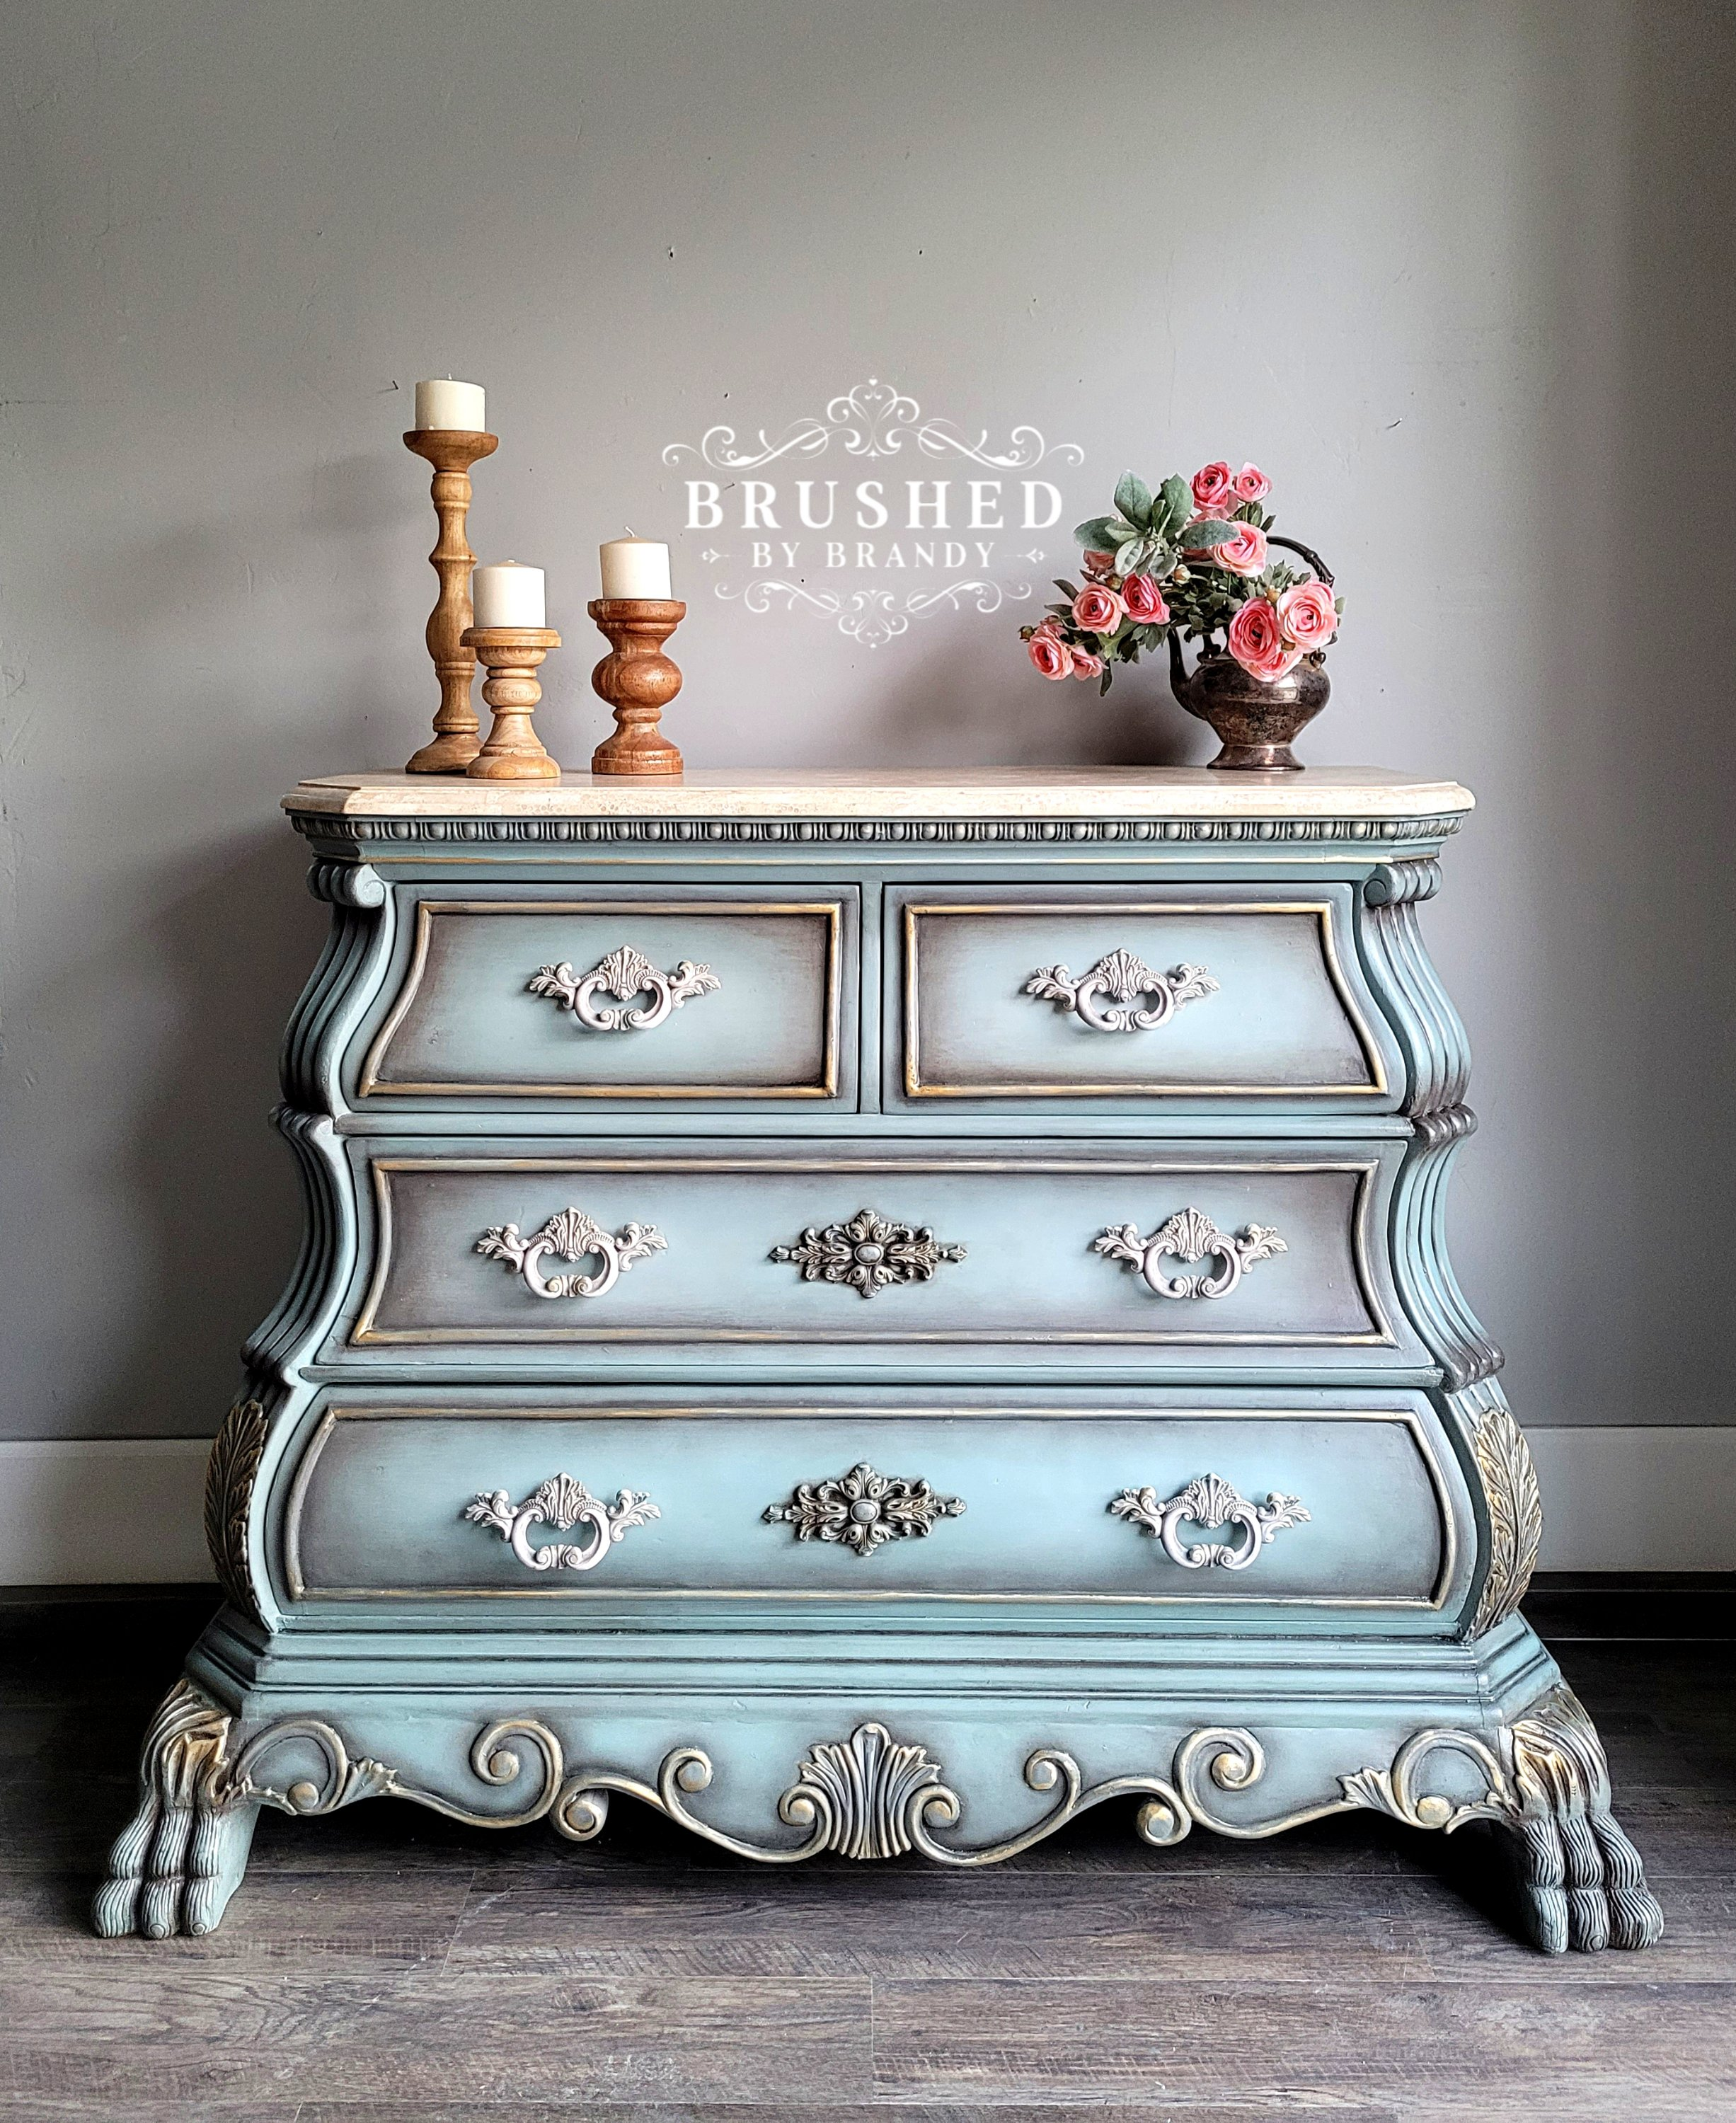 French Console Brushed by Brandy